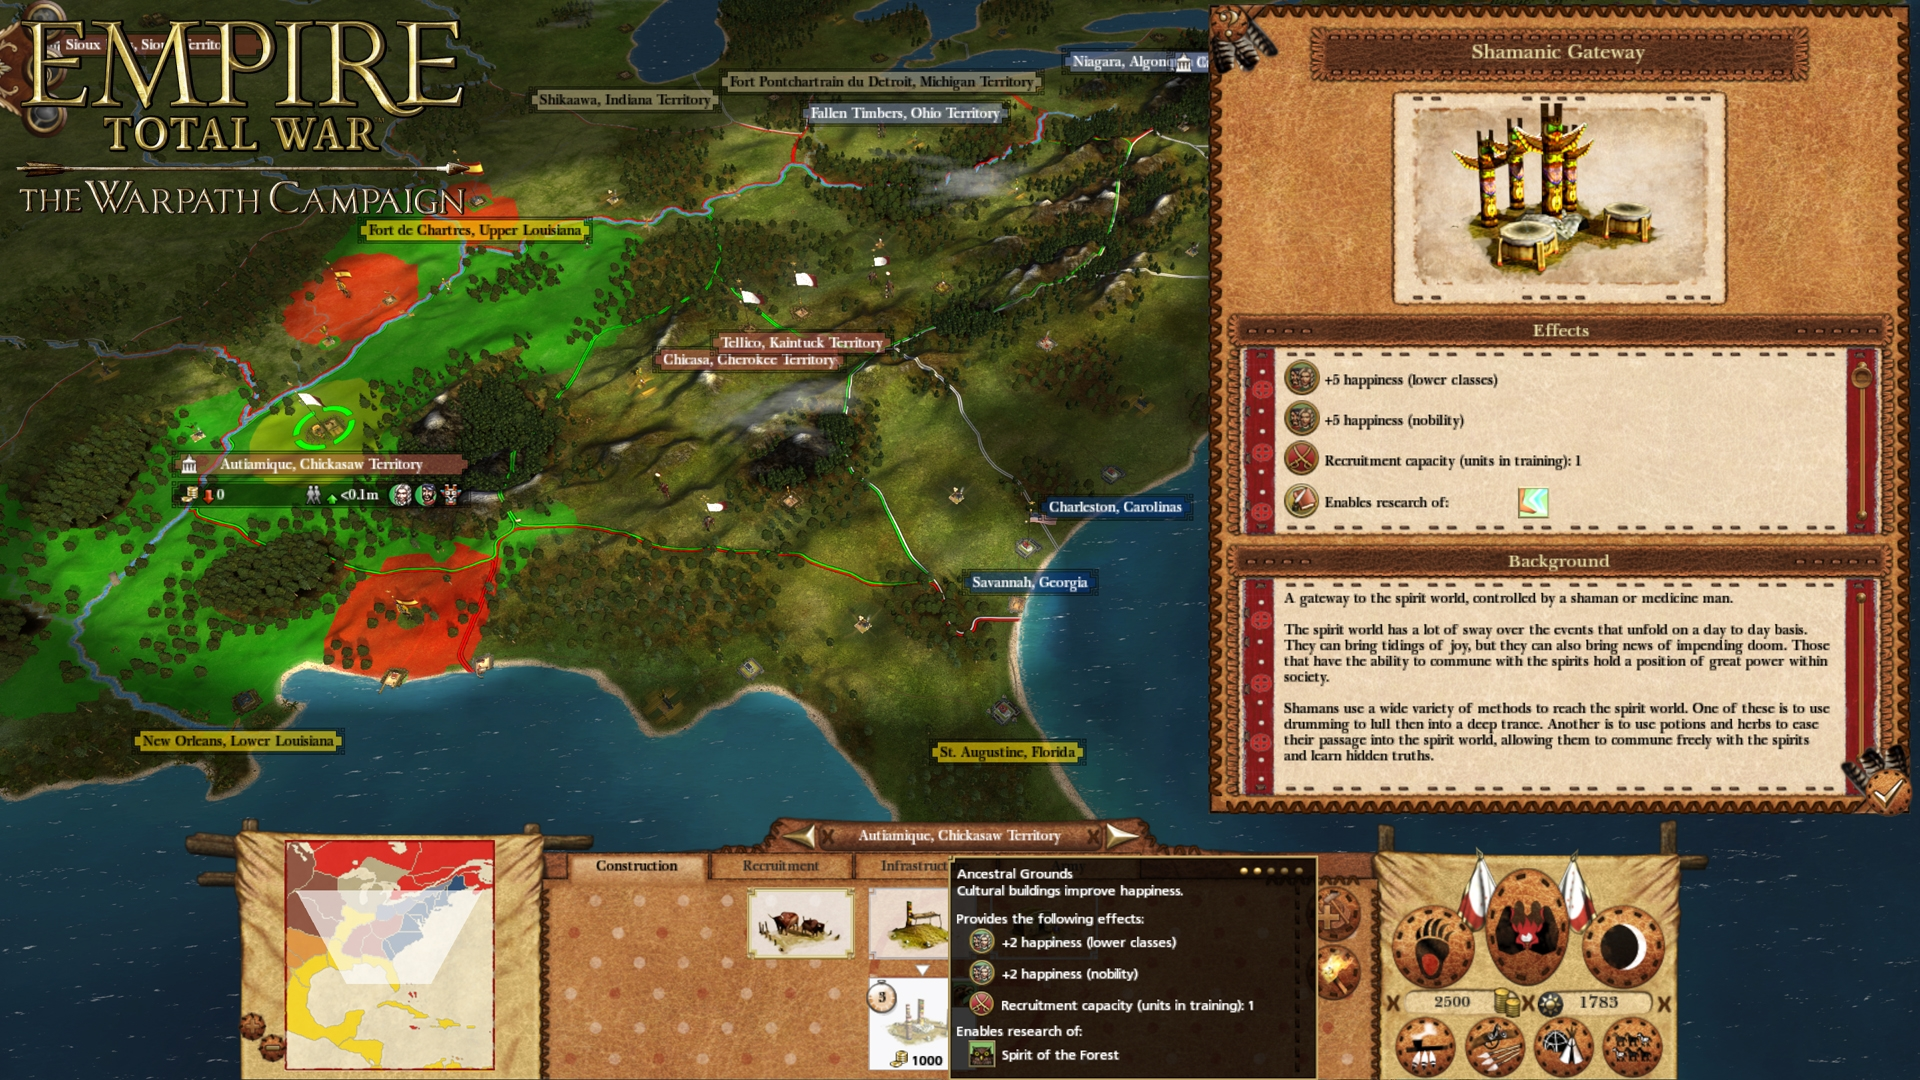 Empire: Total War - The Warpath Campaign screenshot